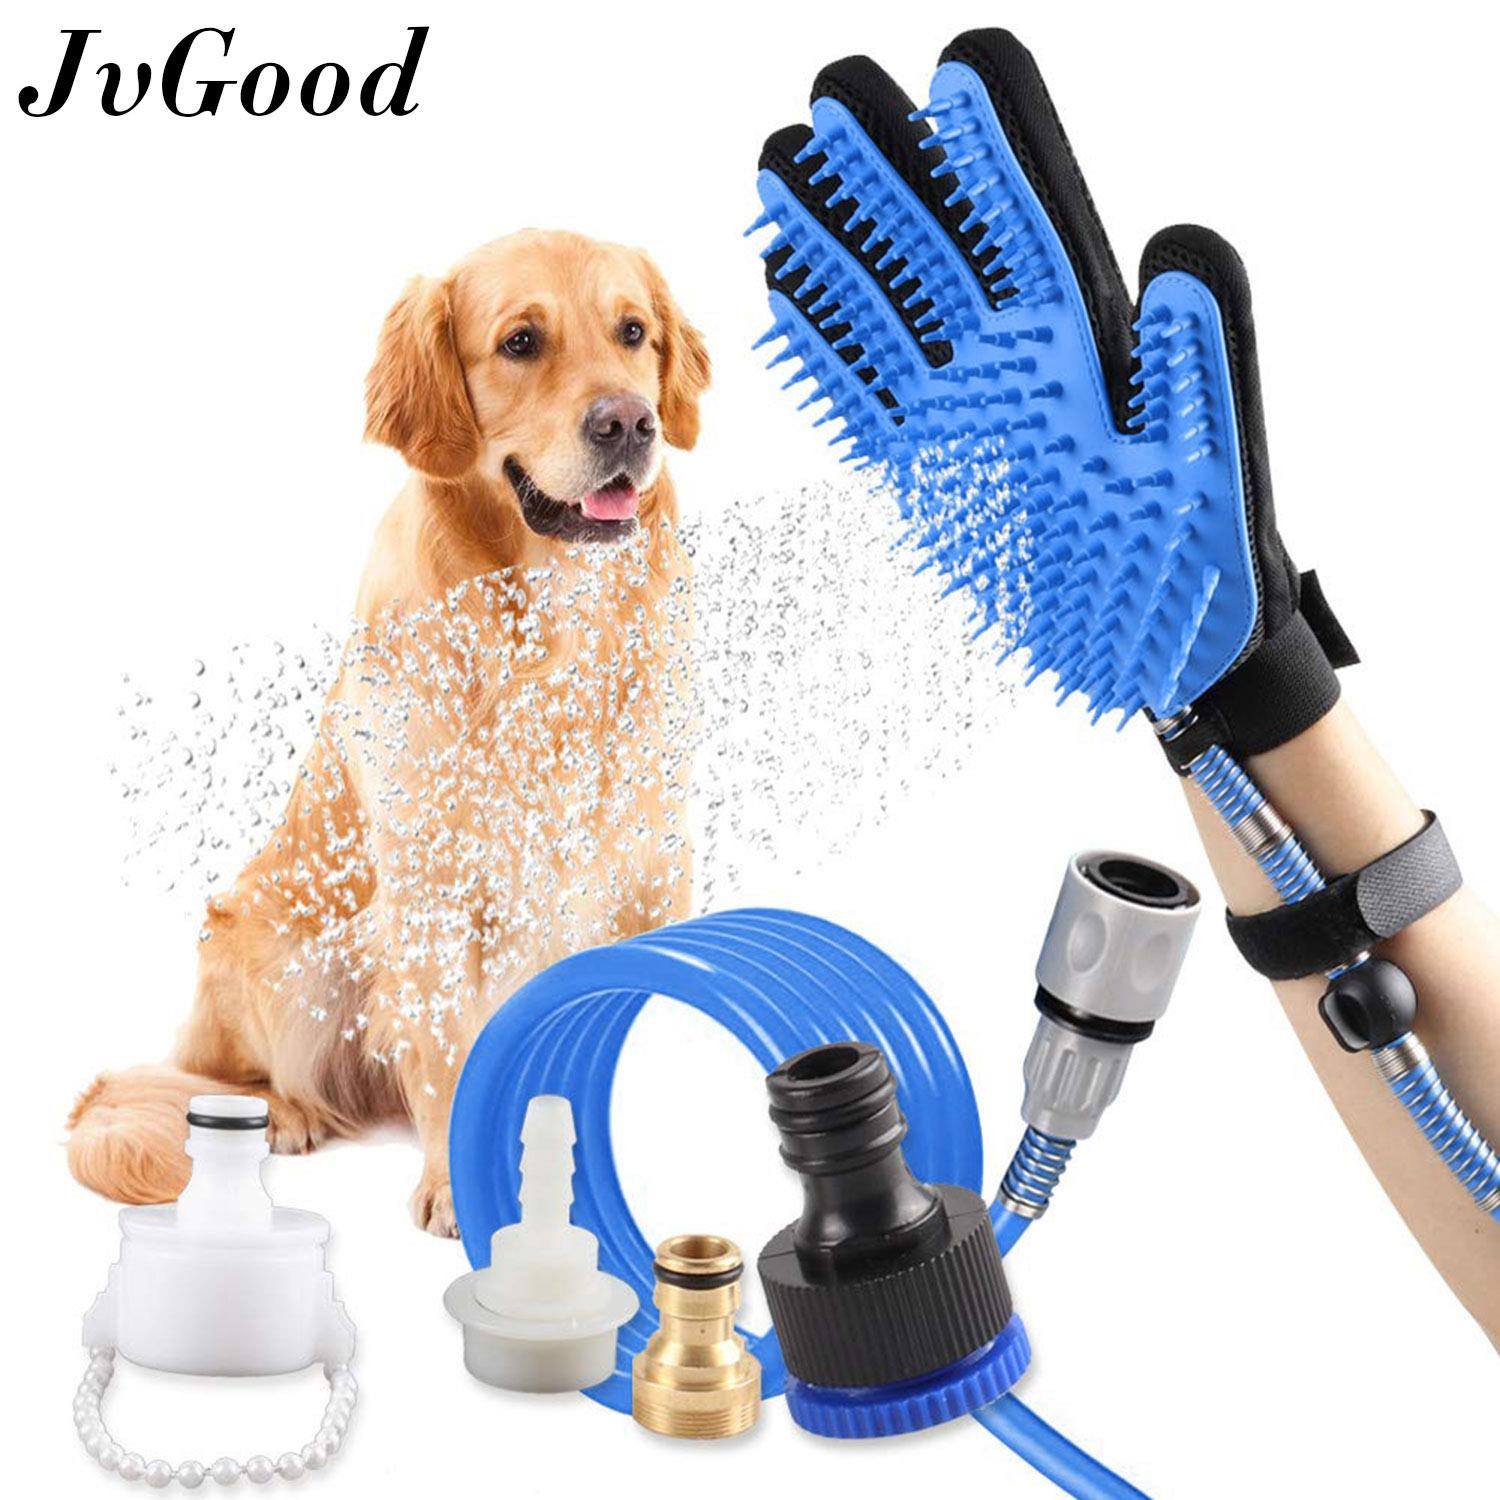 Jvgood Pet Bathing Grooming Gloves Deshedding Brush Glove Pet Shower Sprayer Scrubber Pet Hair Remover Glove Dog Cat Gentle Efficient Massage Grooming Pet Bath Clean Brush Gloves With 3 Faucet Adapters By Jvgood.